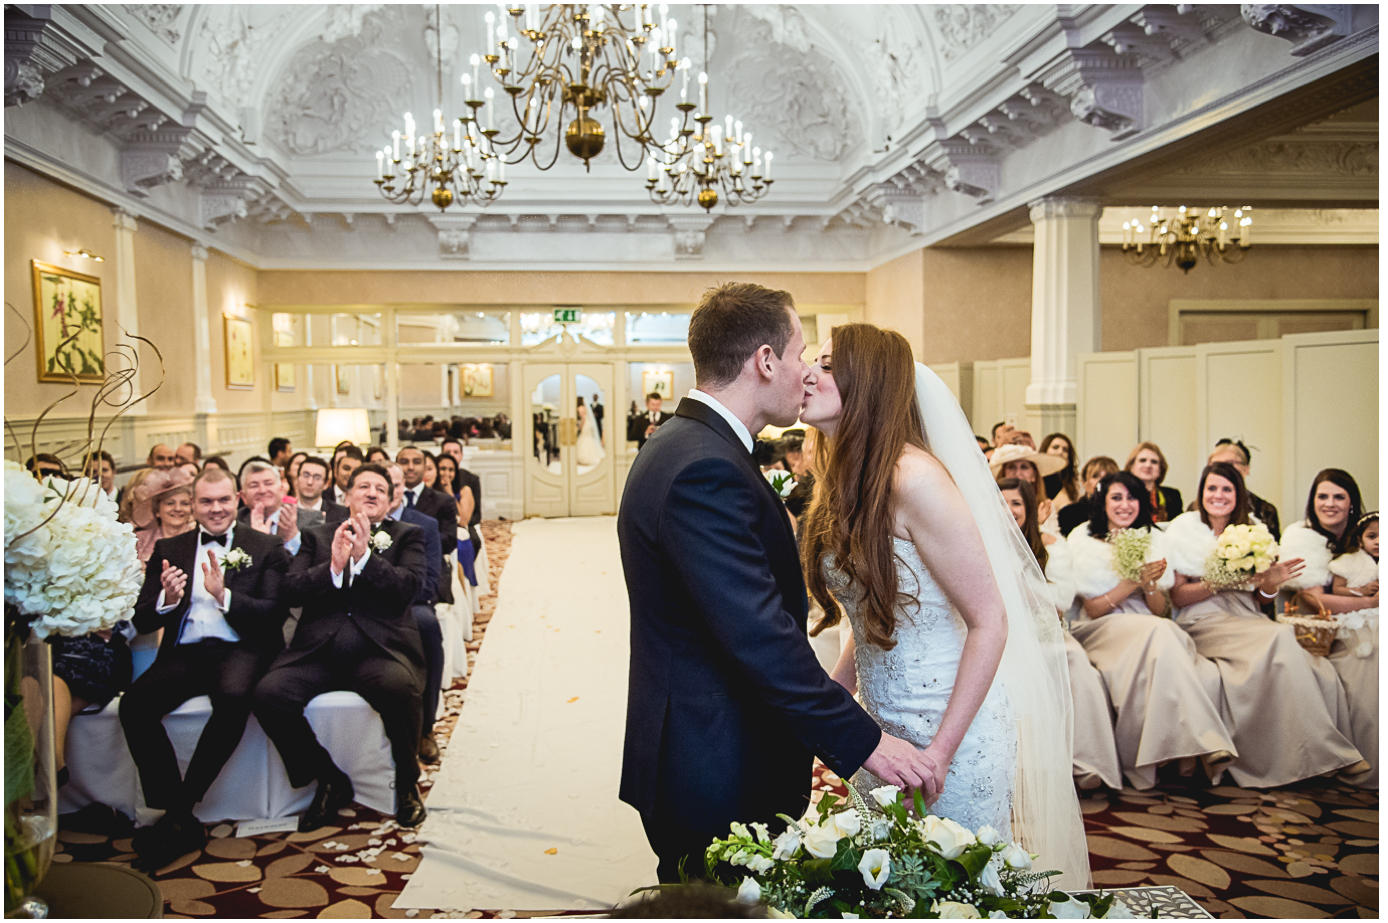 37 - Esmat and Angus - St. Ermin's Hotel London wedding photographer